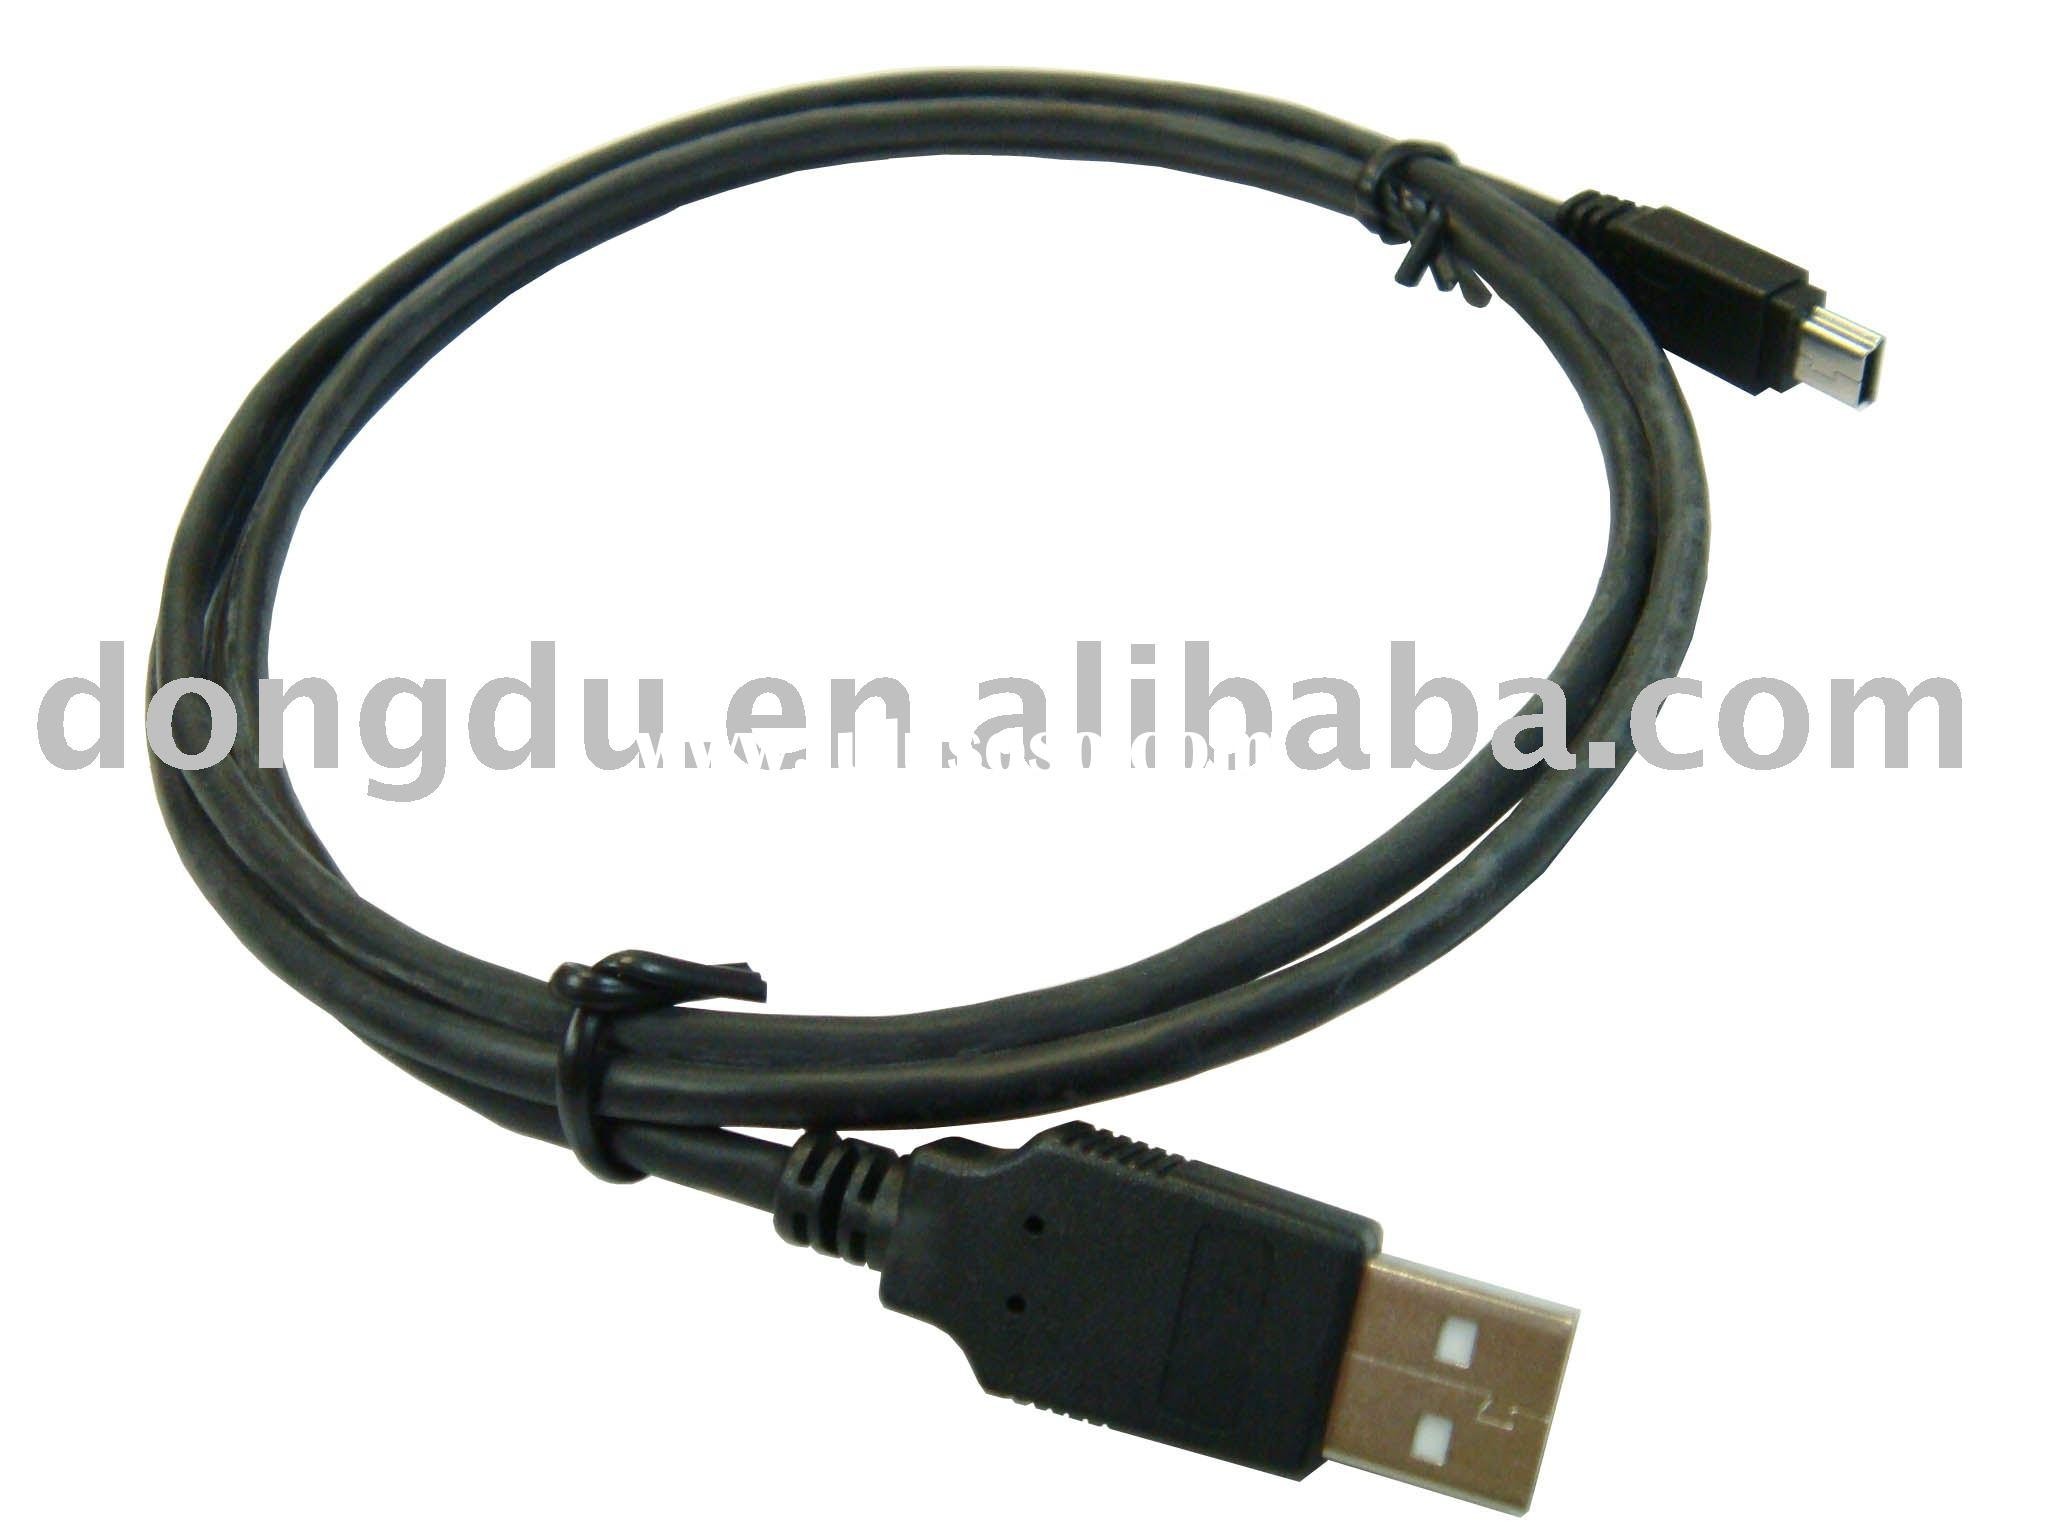 high speed usb cable 2.0